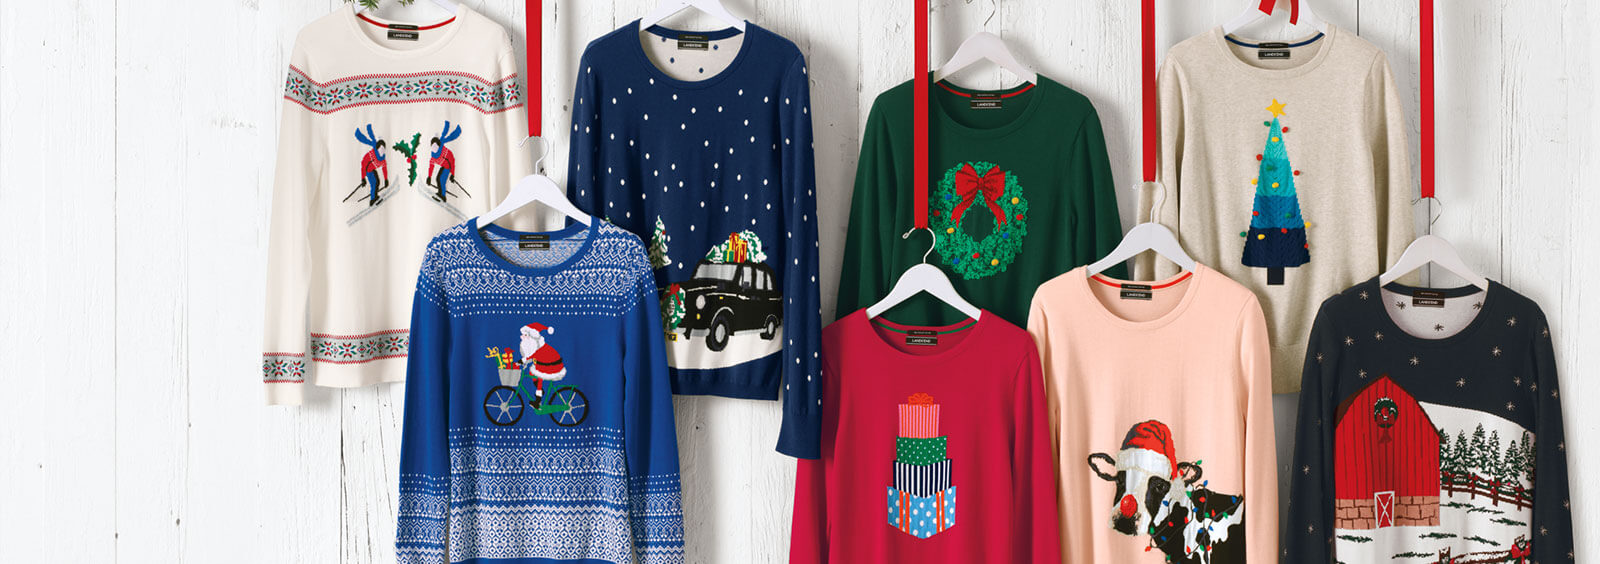 How to win the Christmas Sweater party